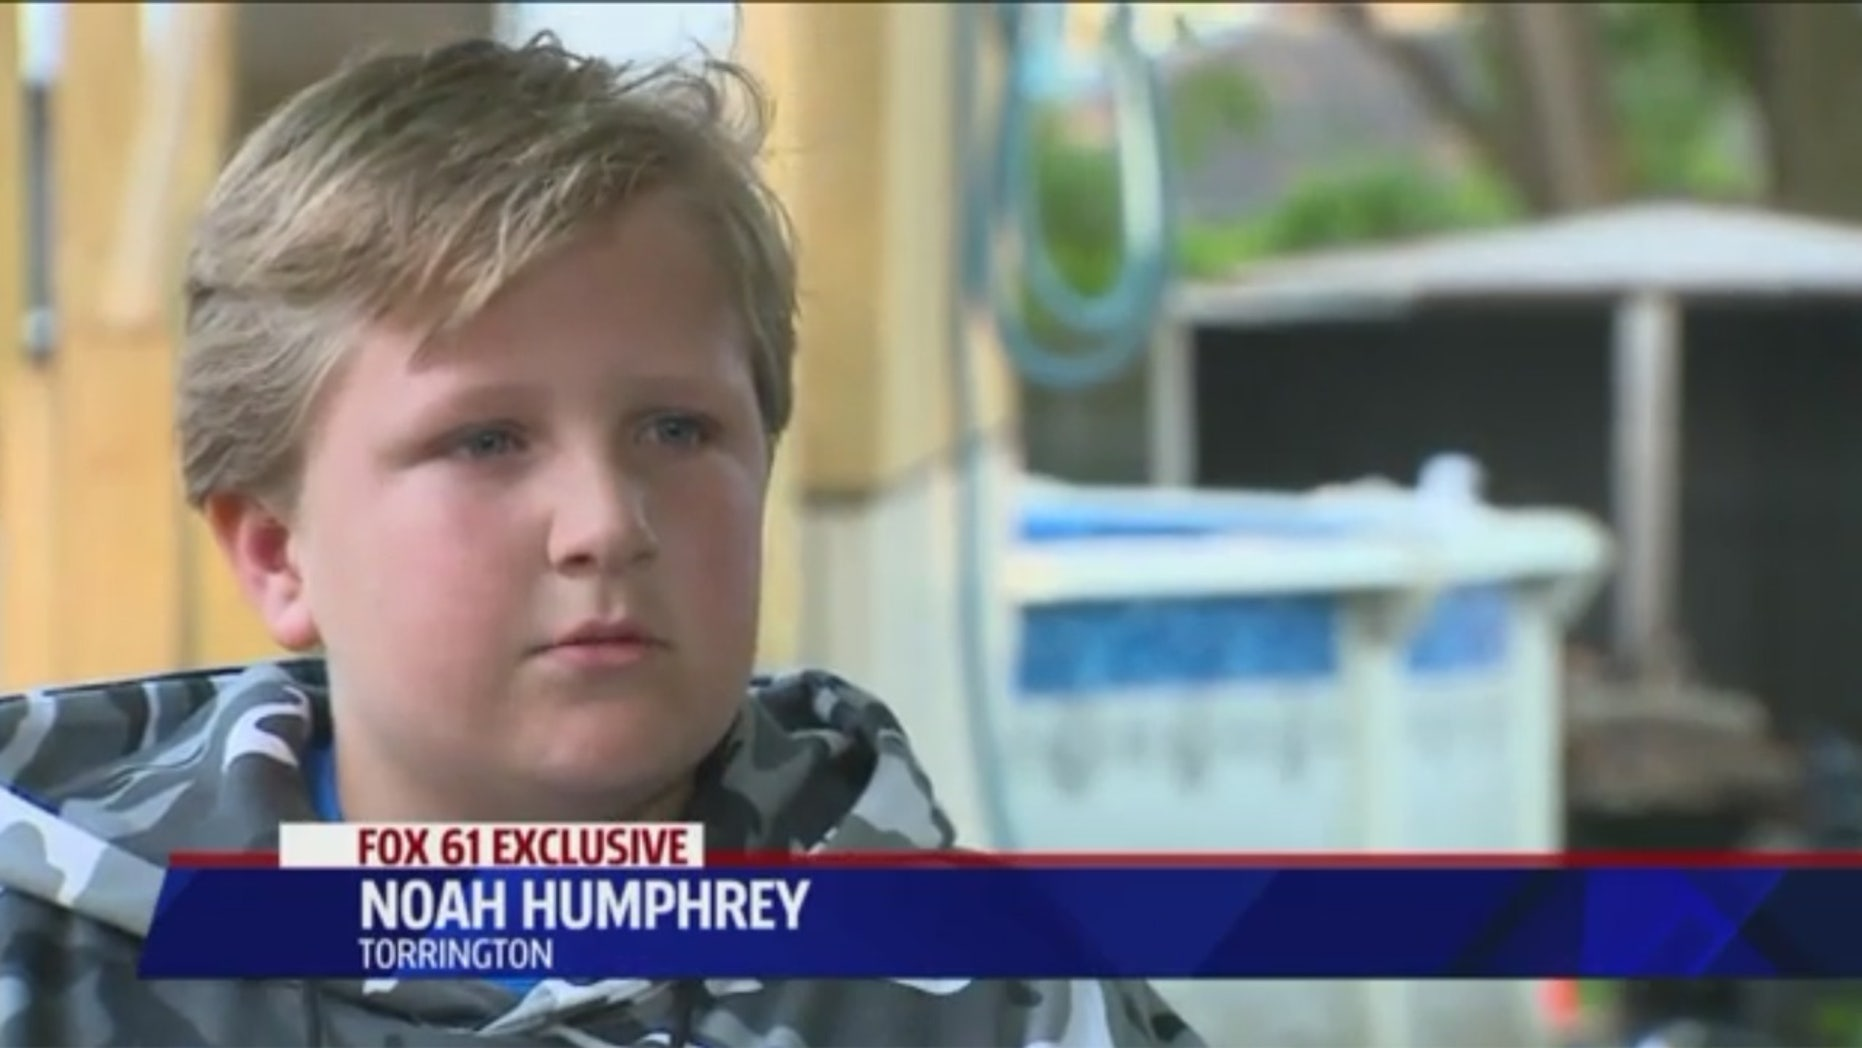 Noah Humphrey is being hailed as a hero after he saved his grandfather from drowning in a pool.